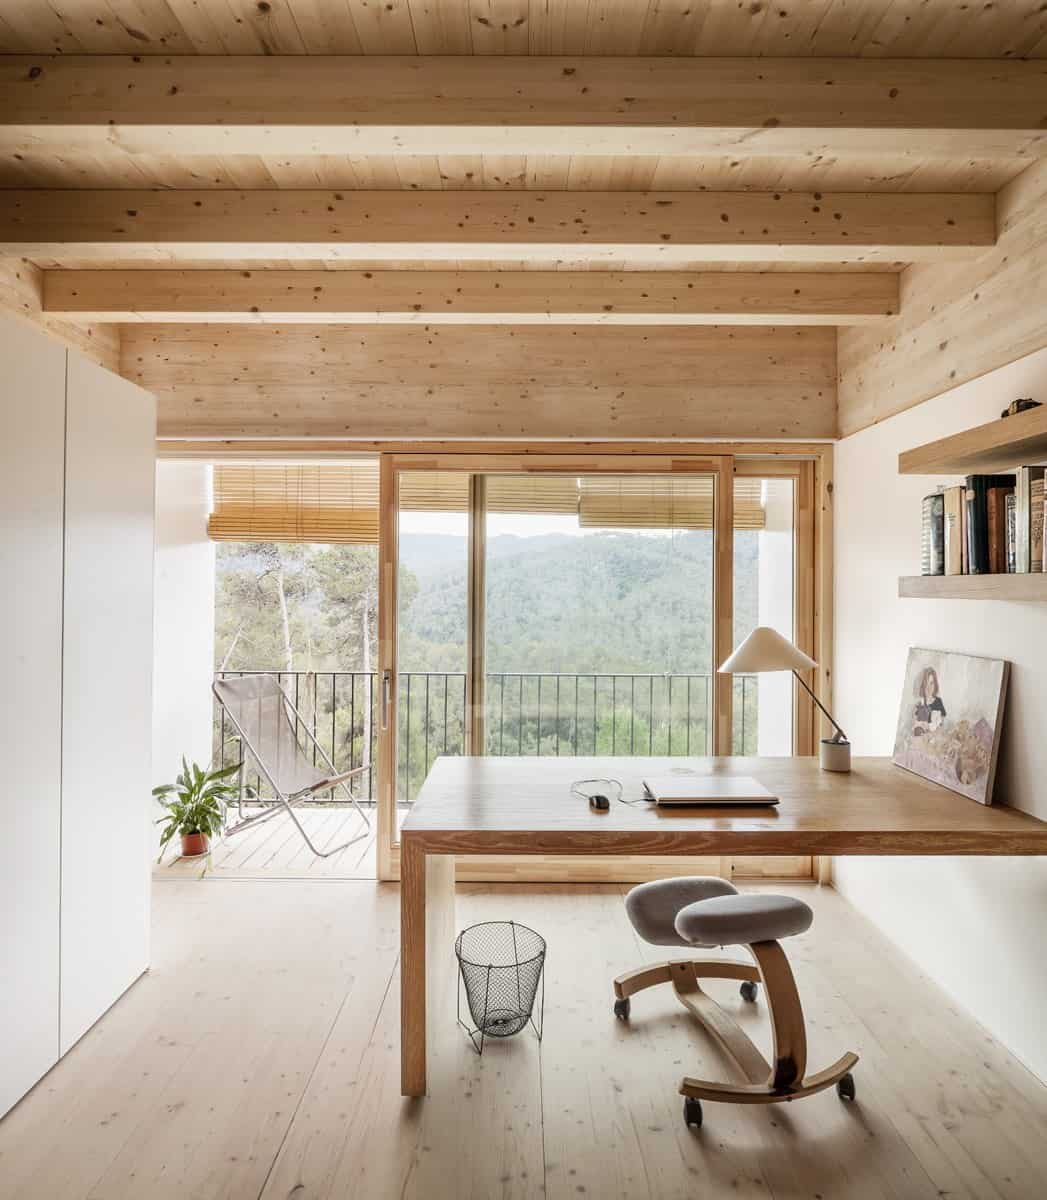 Prefabricated Home Design-Alventosa Morell Arquitectes-12-1 Kindesign